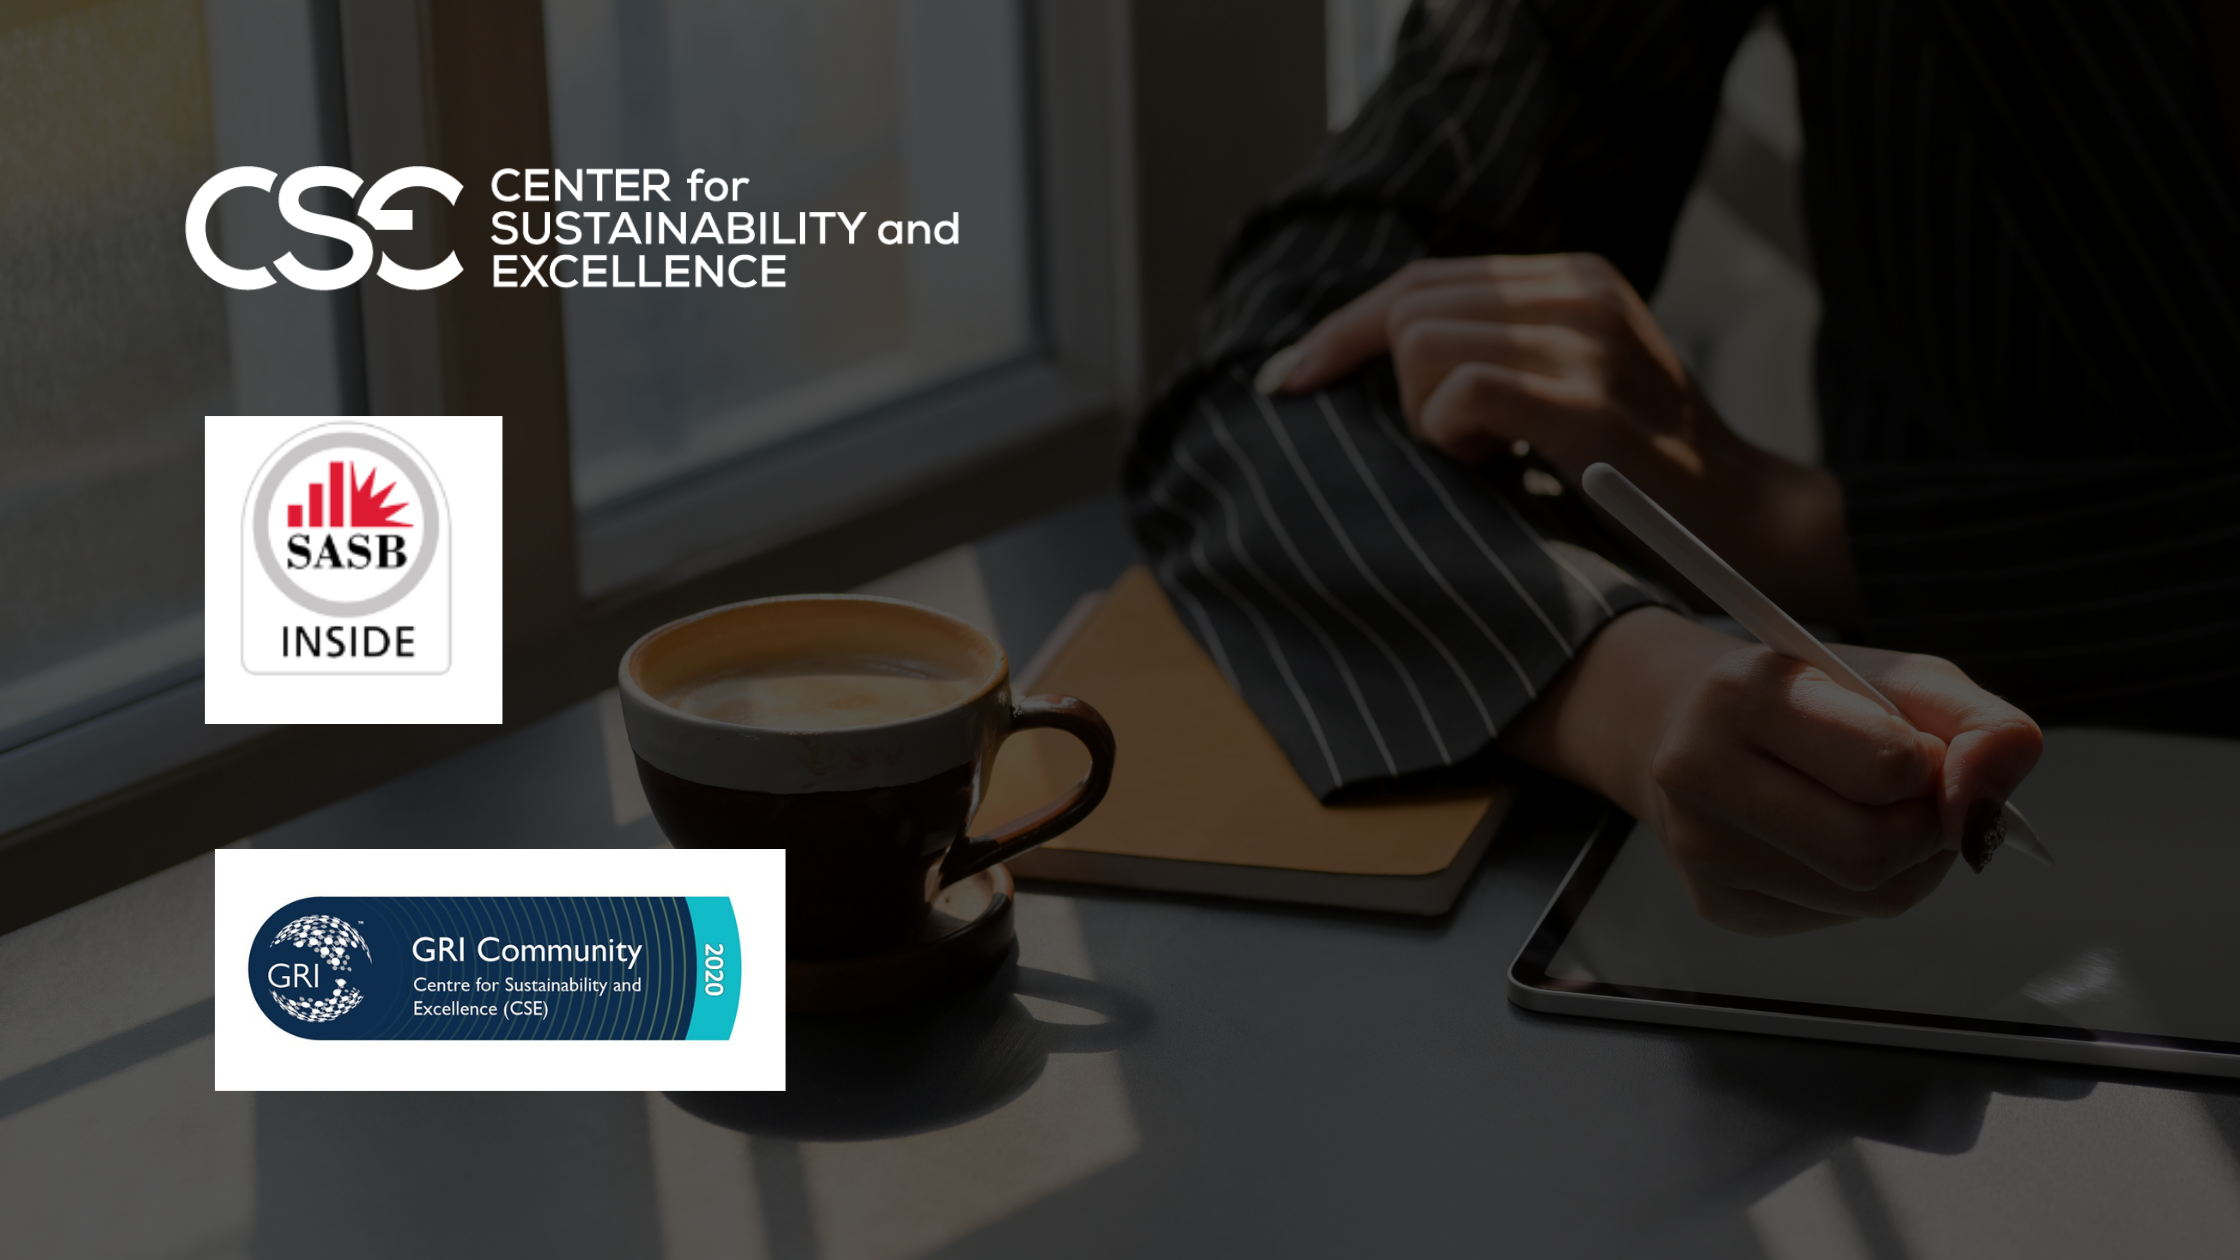 Two critical tools in applying Sustainability: Materiality Assessment and ESG Reporting